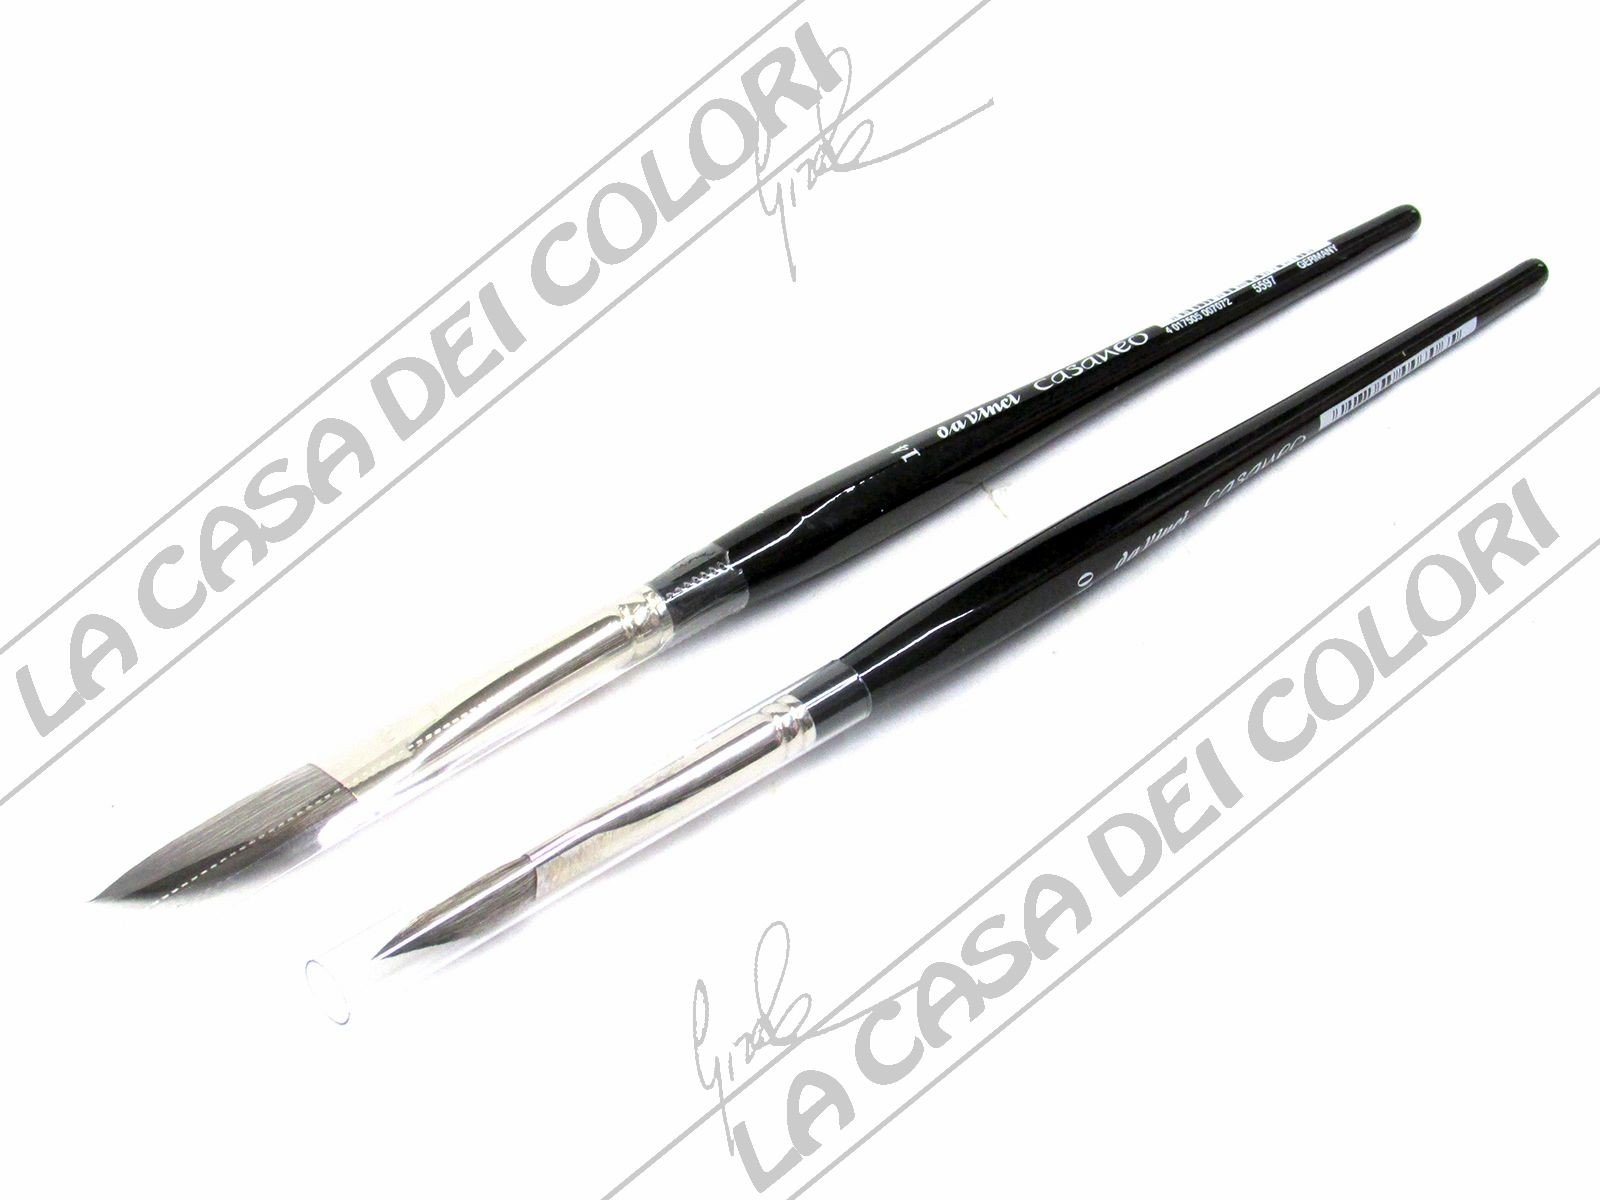 da Vinci Watercolor 5597-14 Casaneo Watercolor Brush Black